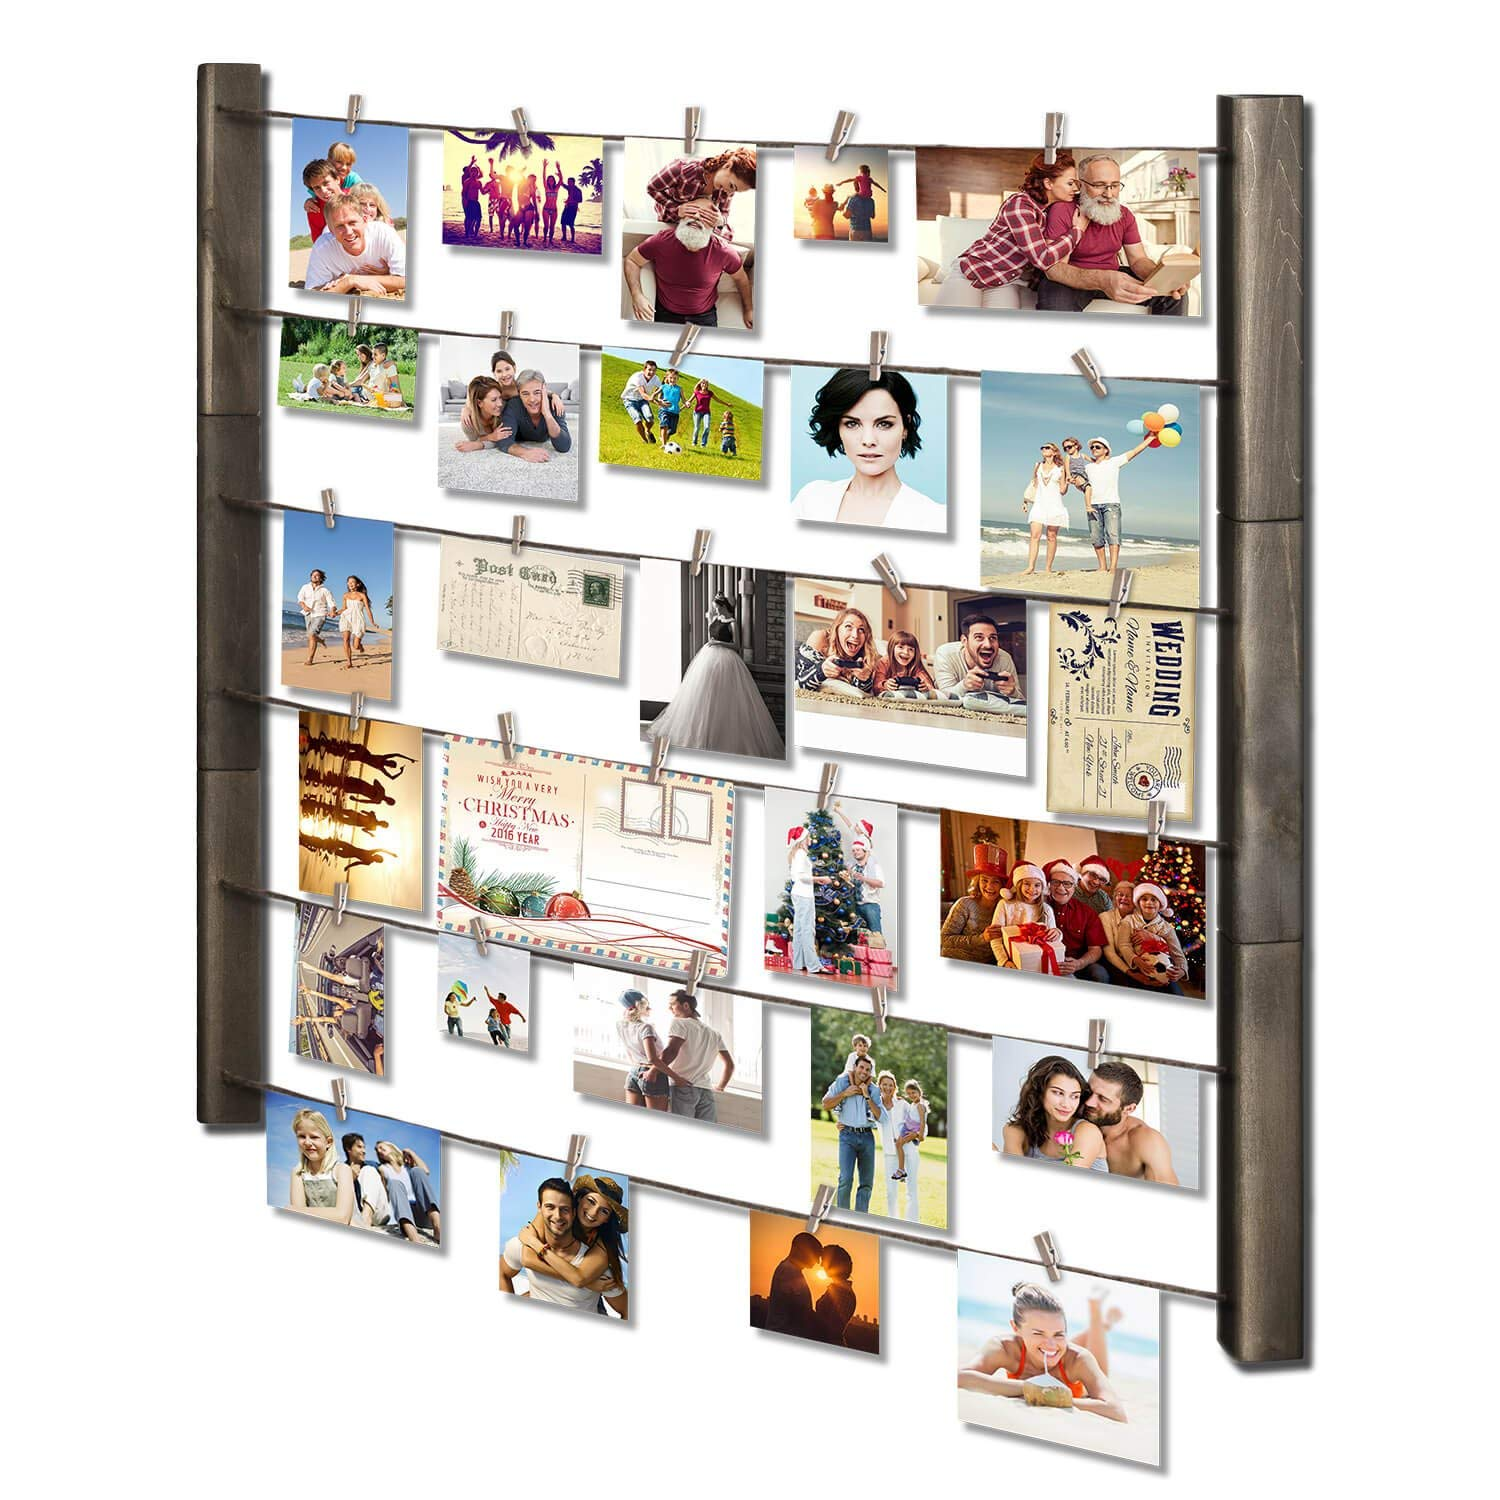 SRIWATANA Wood Picture Frame Collage for Multi Photo Display Wall Decor 30'' x 26 with 36 Clips - Vertical & Horizontal Display(Weathered Grey)